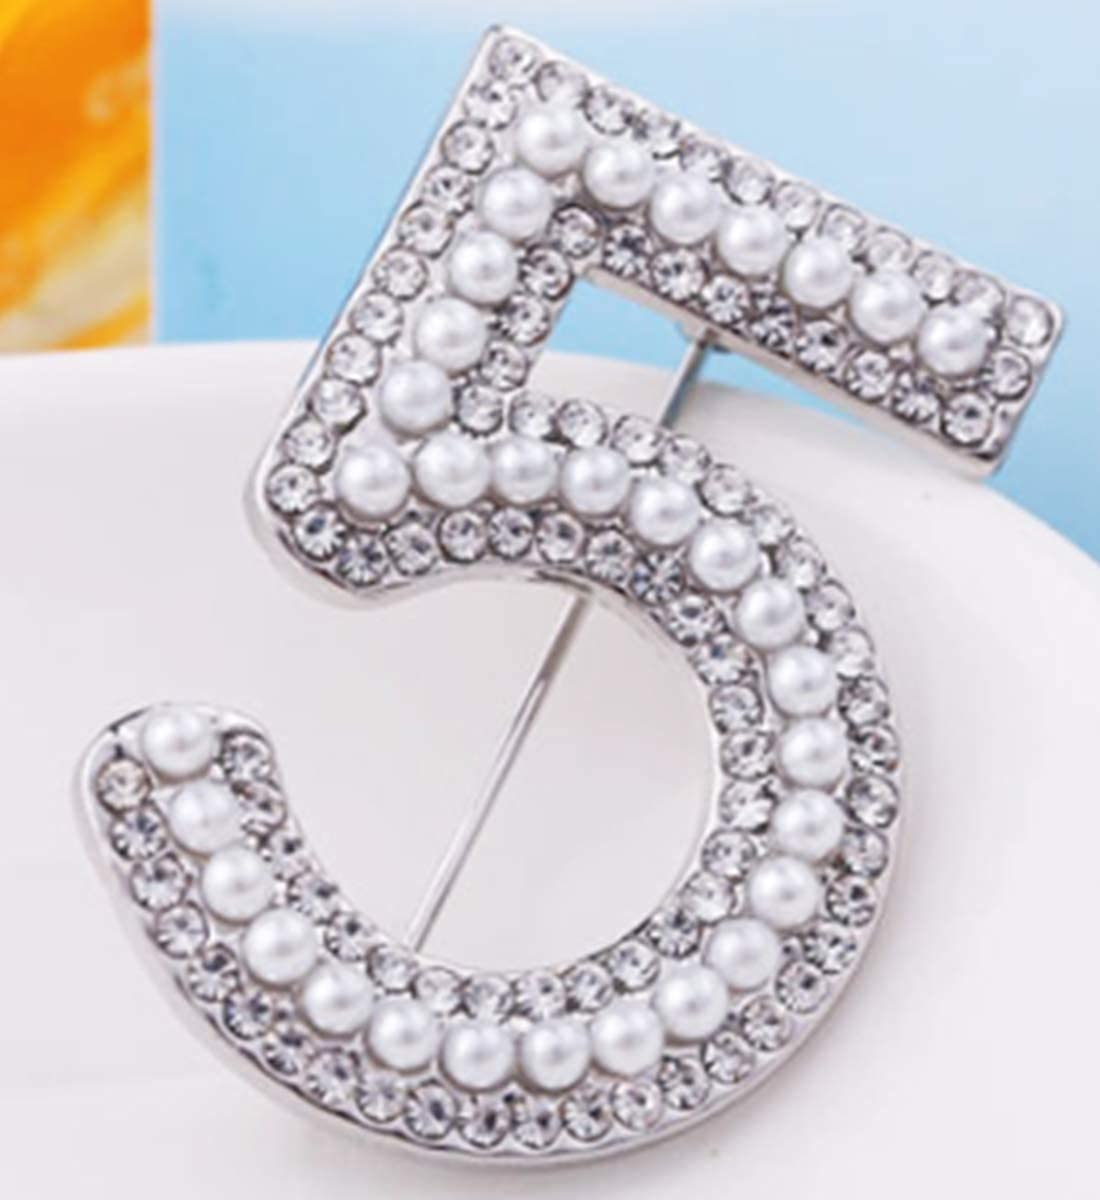 Alloy Artificial Pearl Brooch Pin Pat Mendoza Women/'s Lucky Fashion Digit 5 Brooches